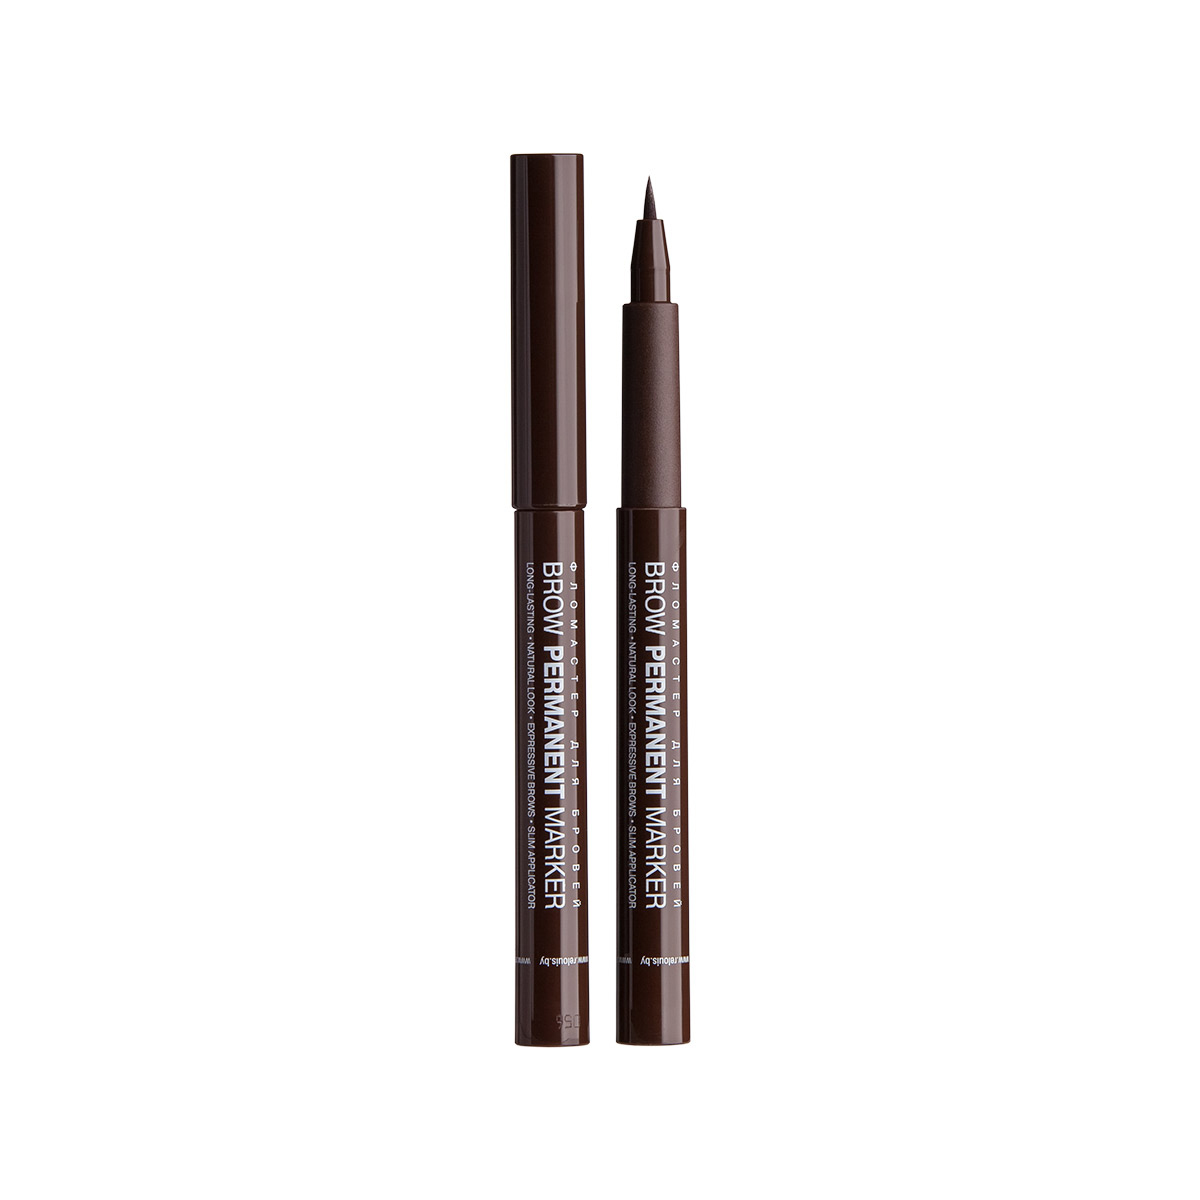 BROW PERMANENT MARKER 02 brown